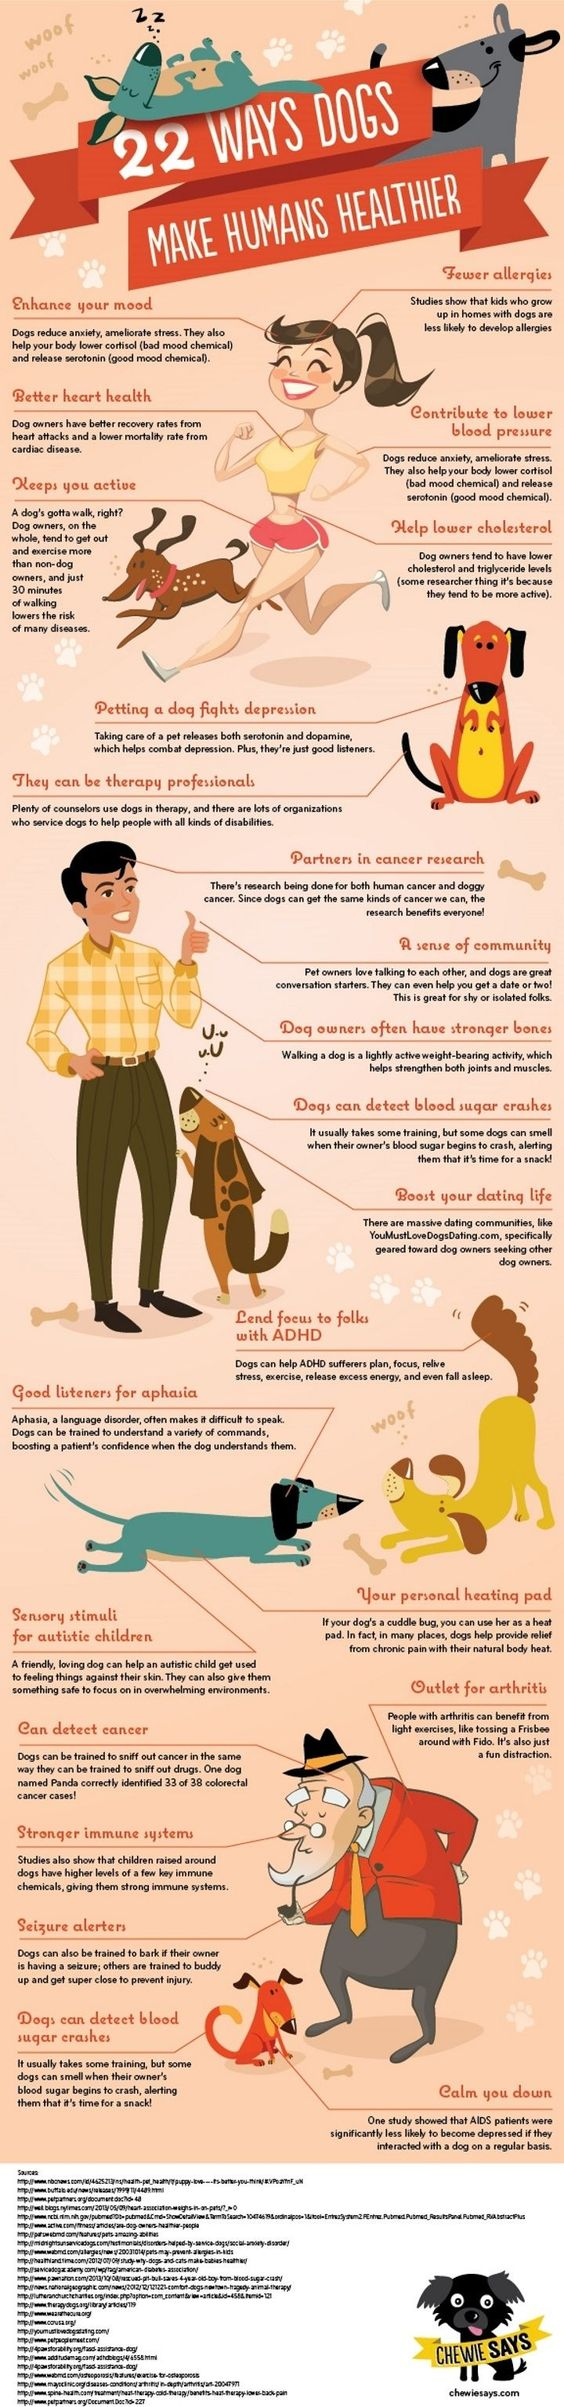 "The good pups at Cheewie Says decided to compile all the ways dogs help humans' health and create an adorable infographic about it! Here are 22 ways dogs can make humans healthier that you can point to (literally if you print this out) when cat people ask you, ""So WHY did you get a dog?"